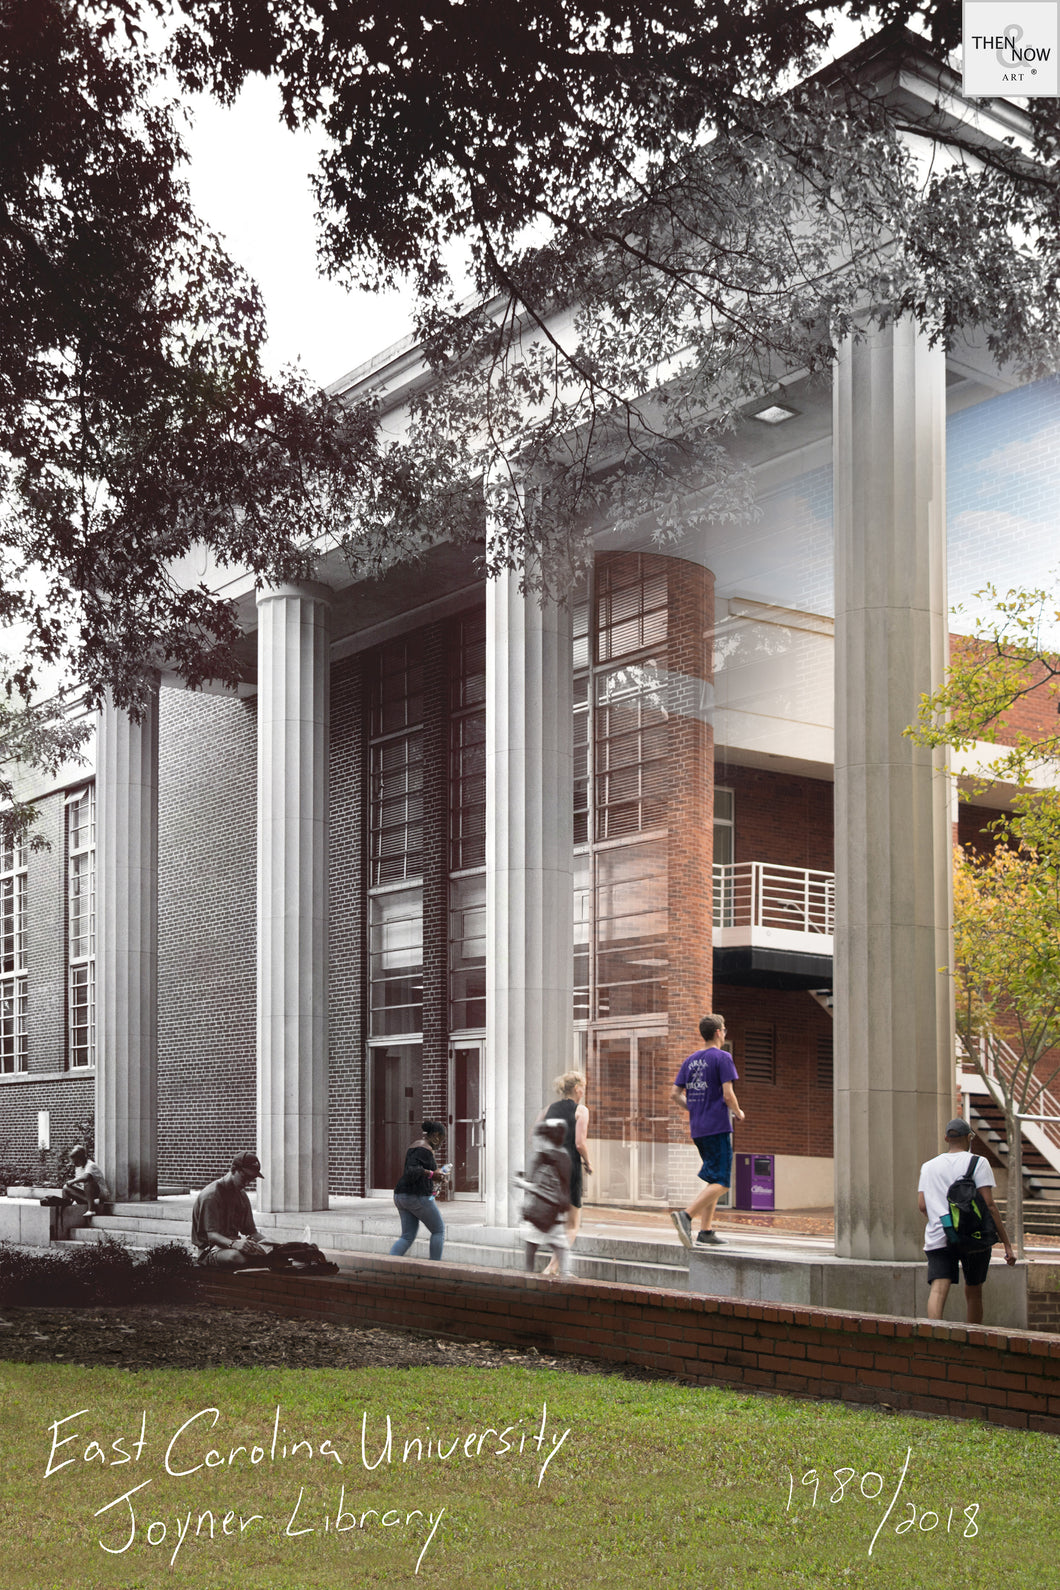 Then & Now Art®: Joyner Library - Greenville, NC [1980/2018]